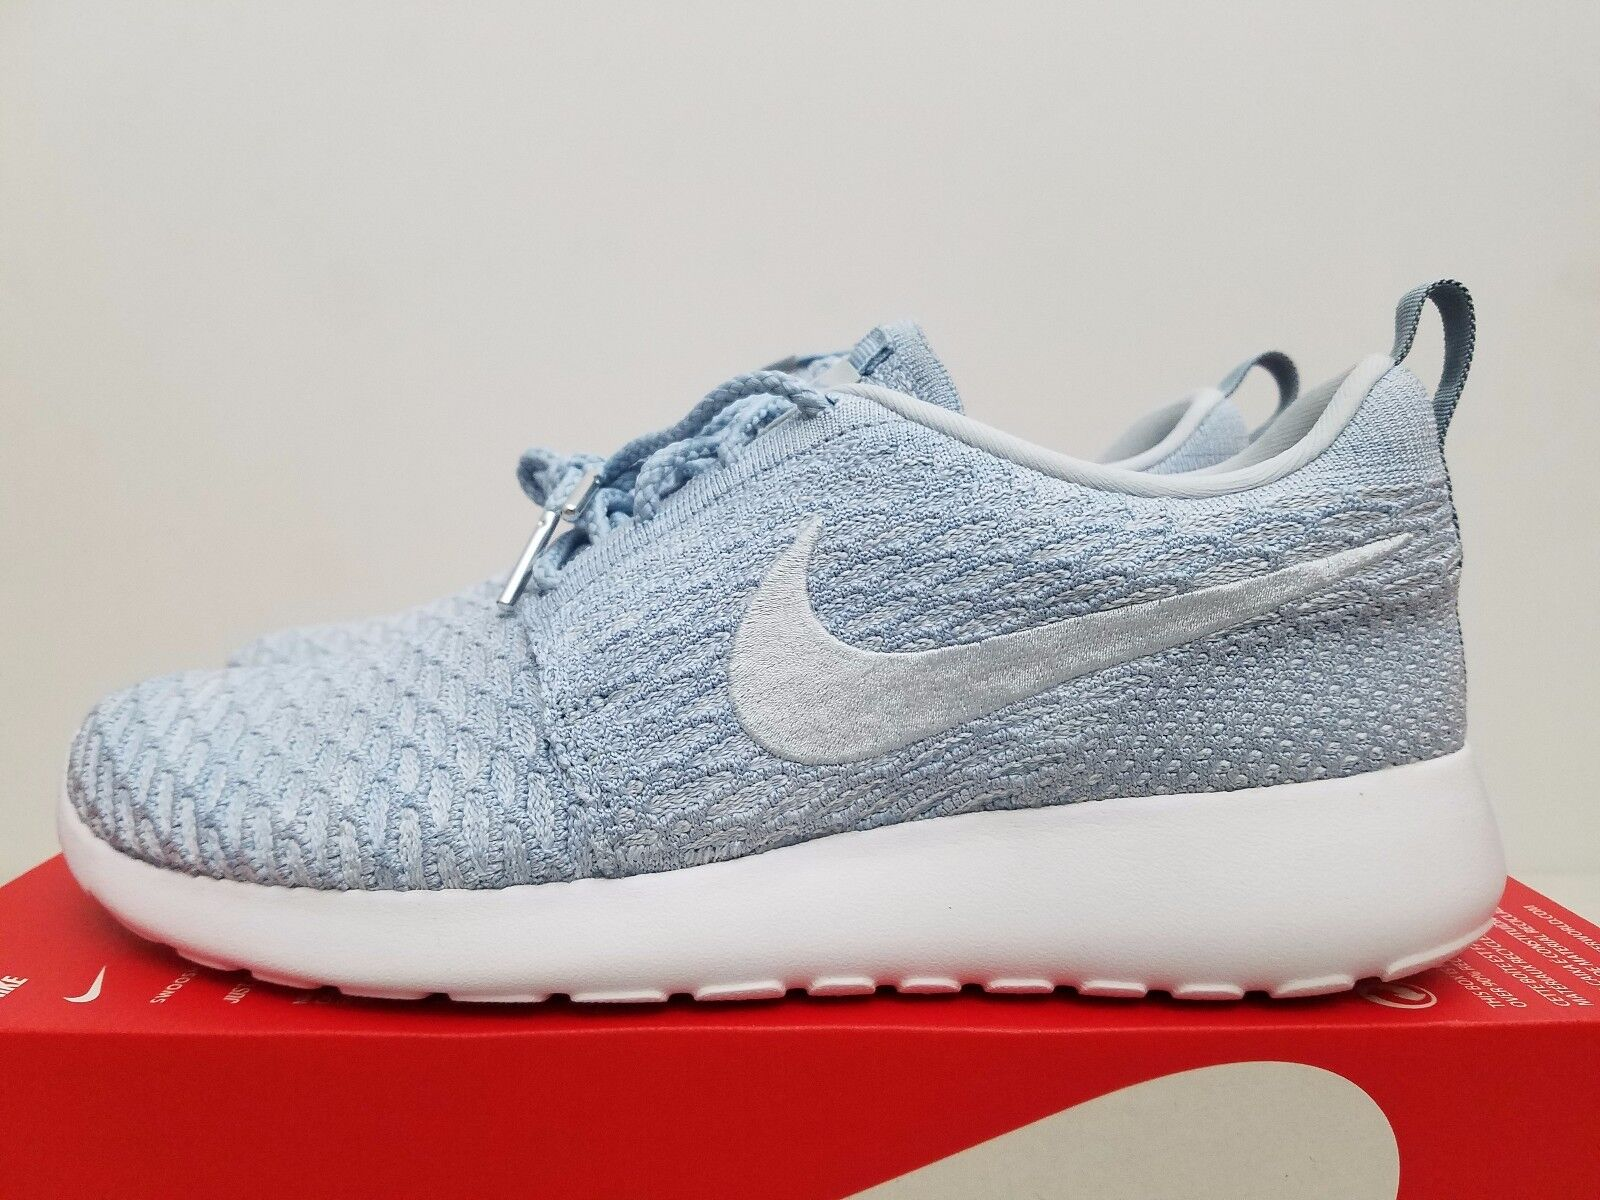 Nike Womens Roshe One Flyknit LT Armory Blue 704927-401 Size 10